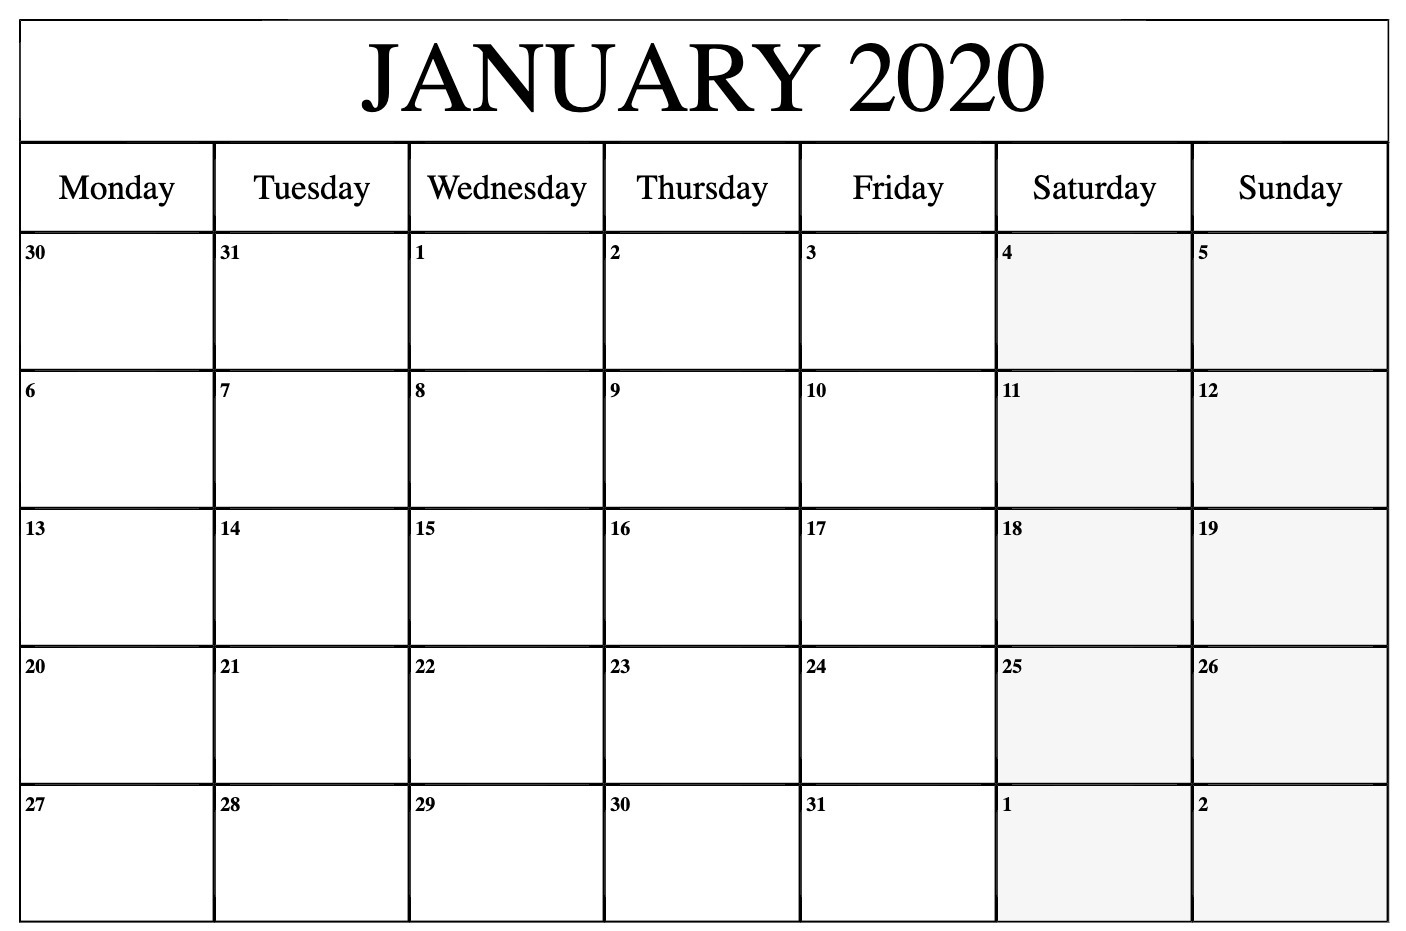 January 2020 Calendar Printable Template In Pdf Word Excel